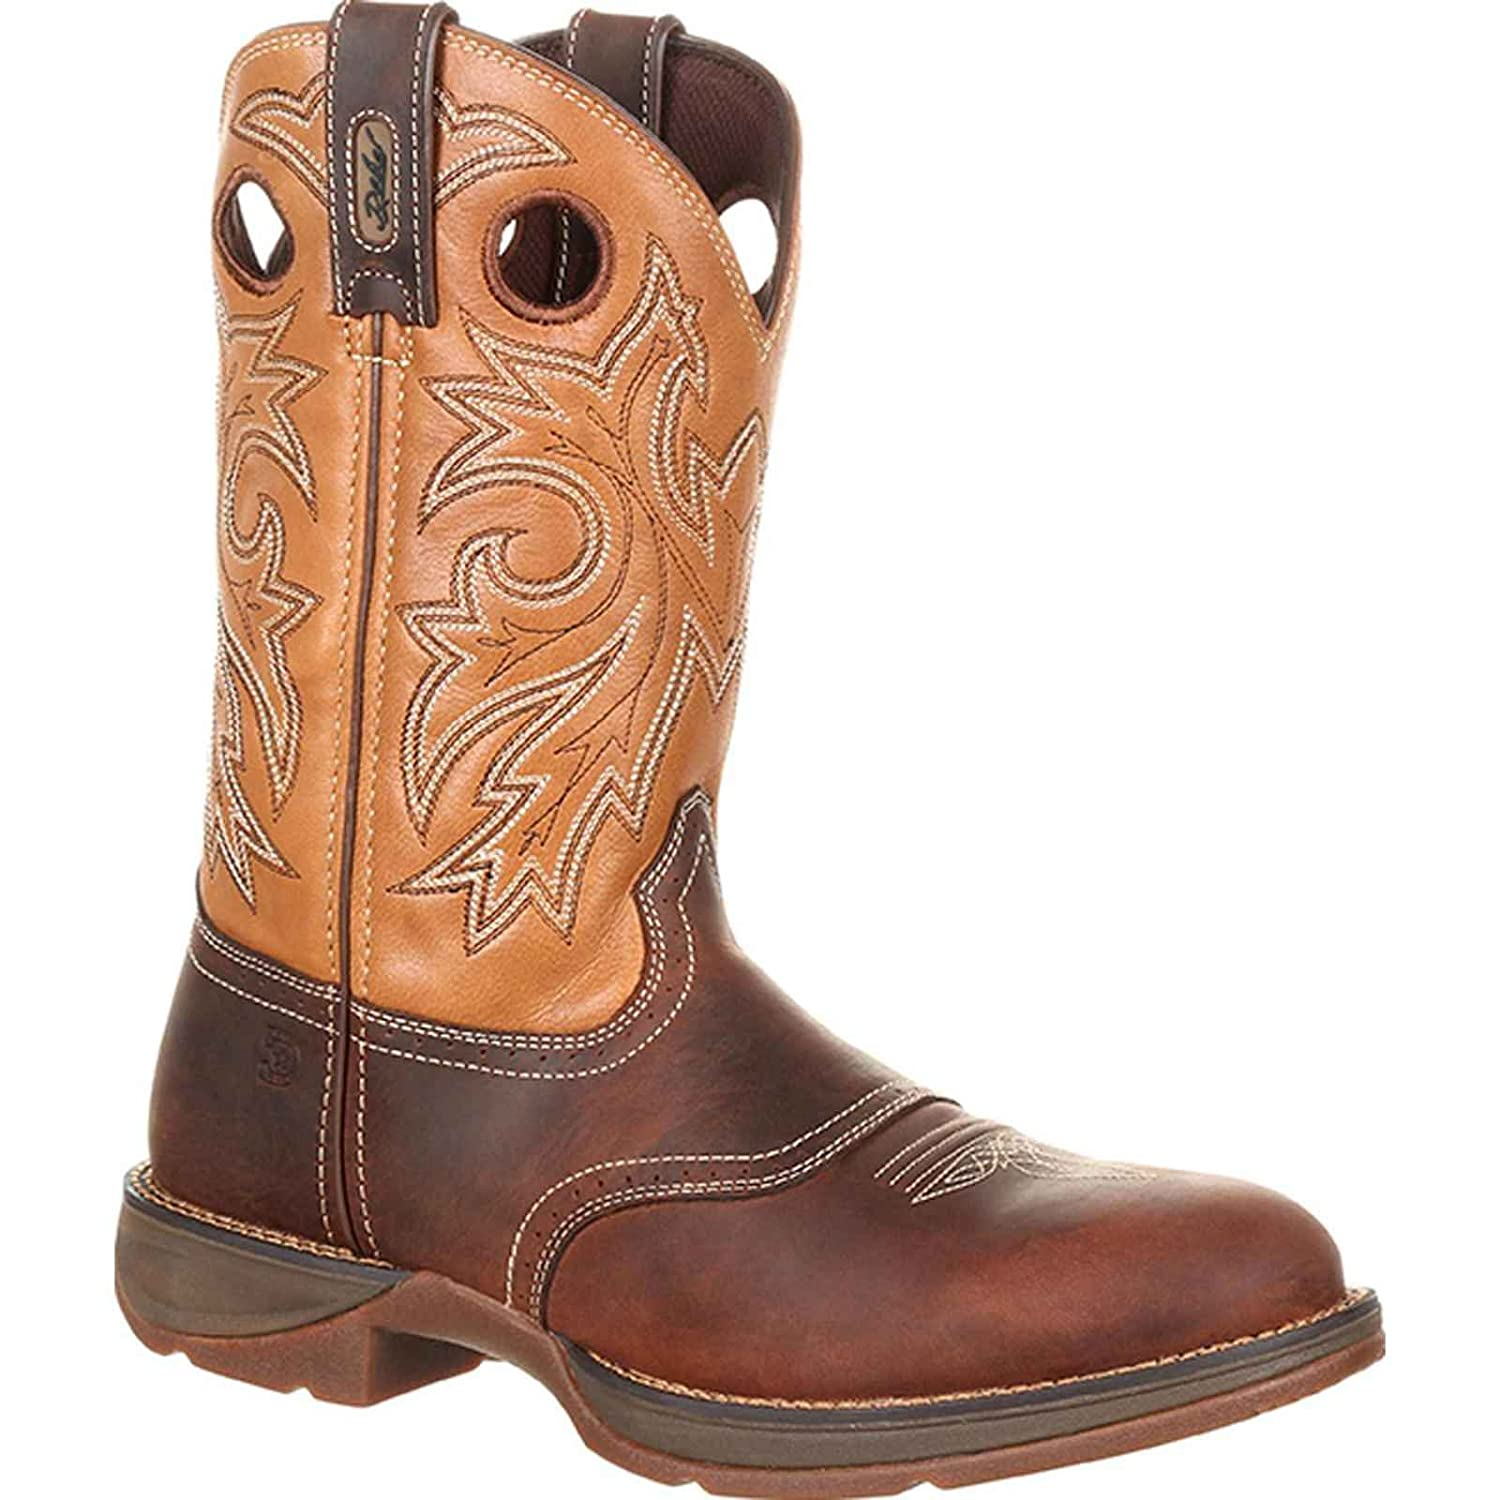 Rebel by Durango Men's Brown and Tan Saddle Western Boot DDB0132 9.5 W